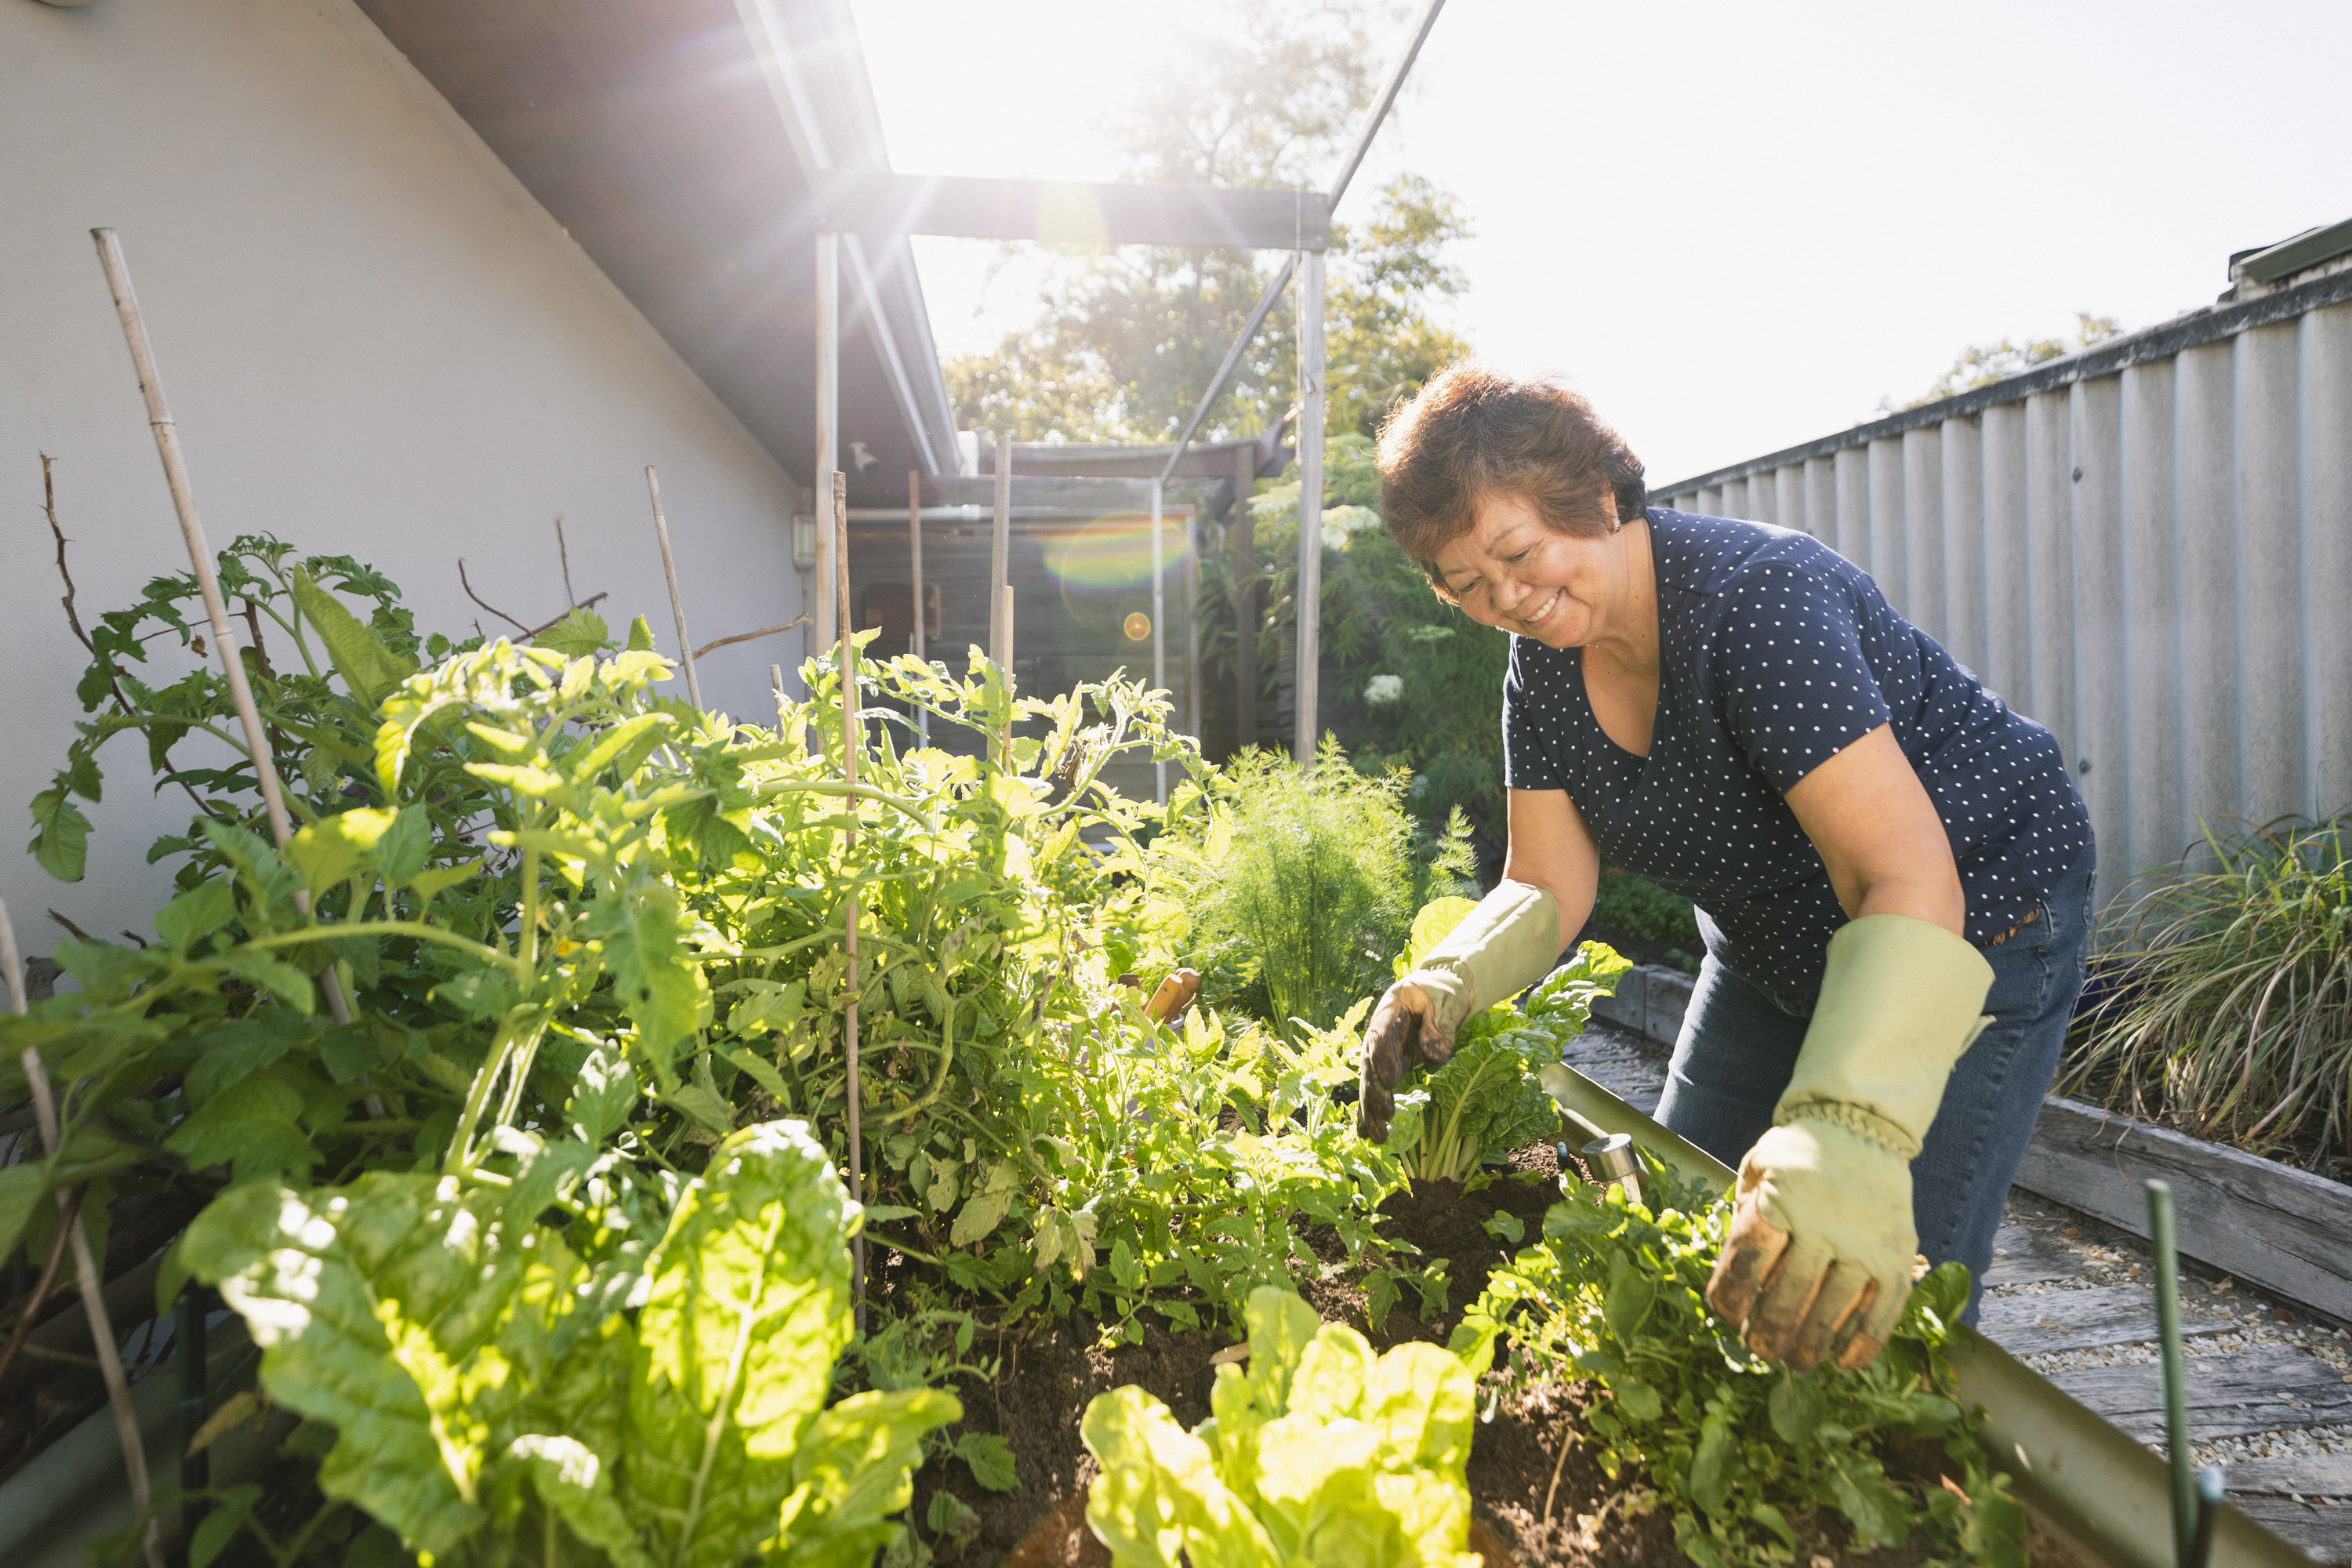 A smiling woman tends to her sunny outdoor garden